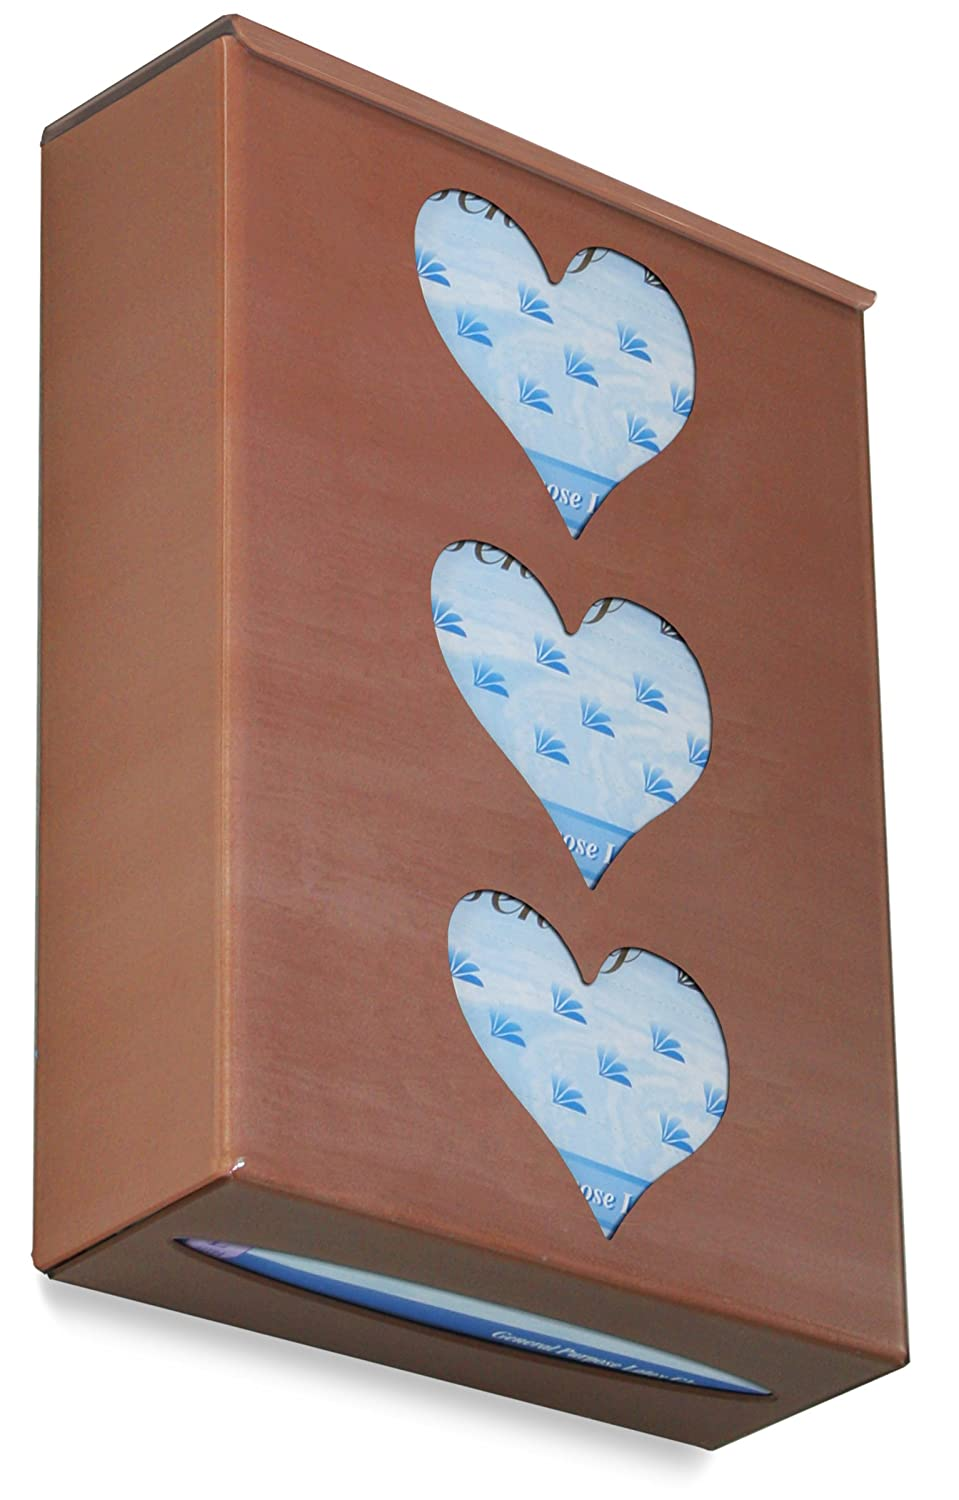 10 Width x 15 Height x 4 Depth 10 Width x 15 Height x 4 Depth TrippNT 52447 Ultimate Heart Triple Sparkling Canyon Copper Dual Dispensing Glove Holder